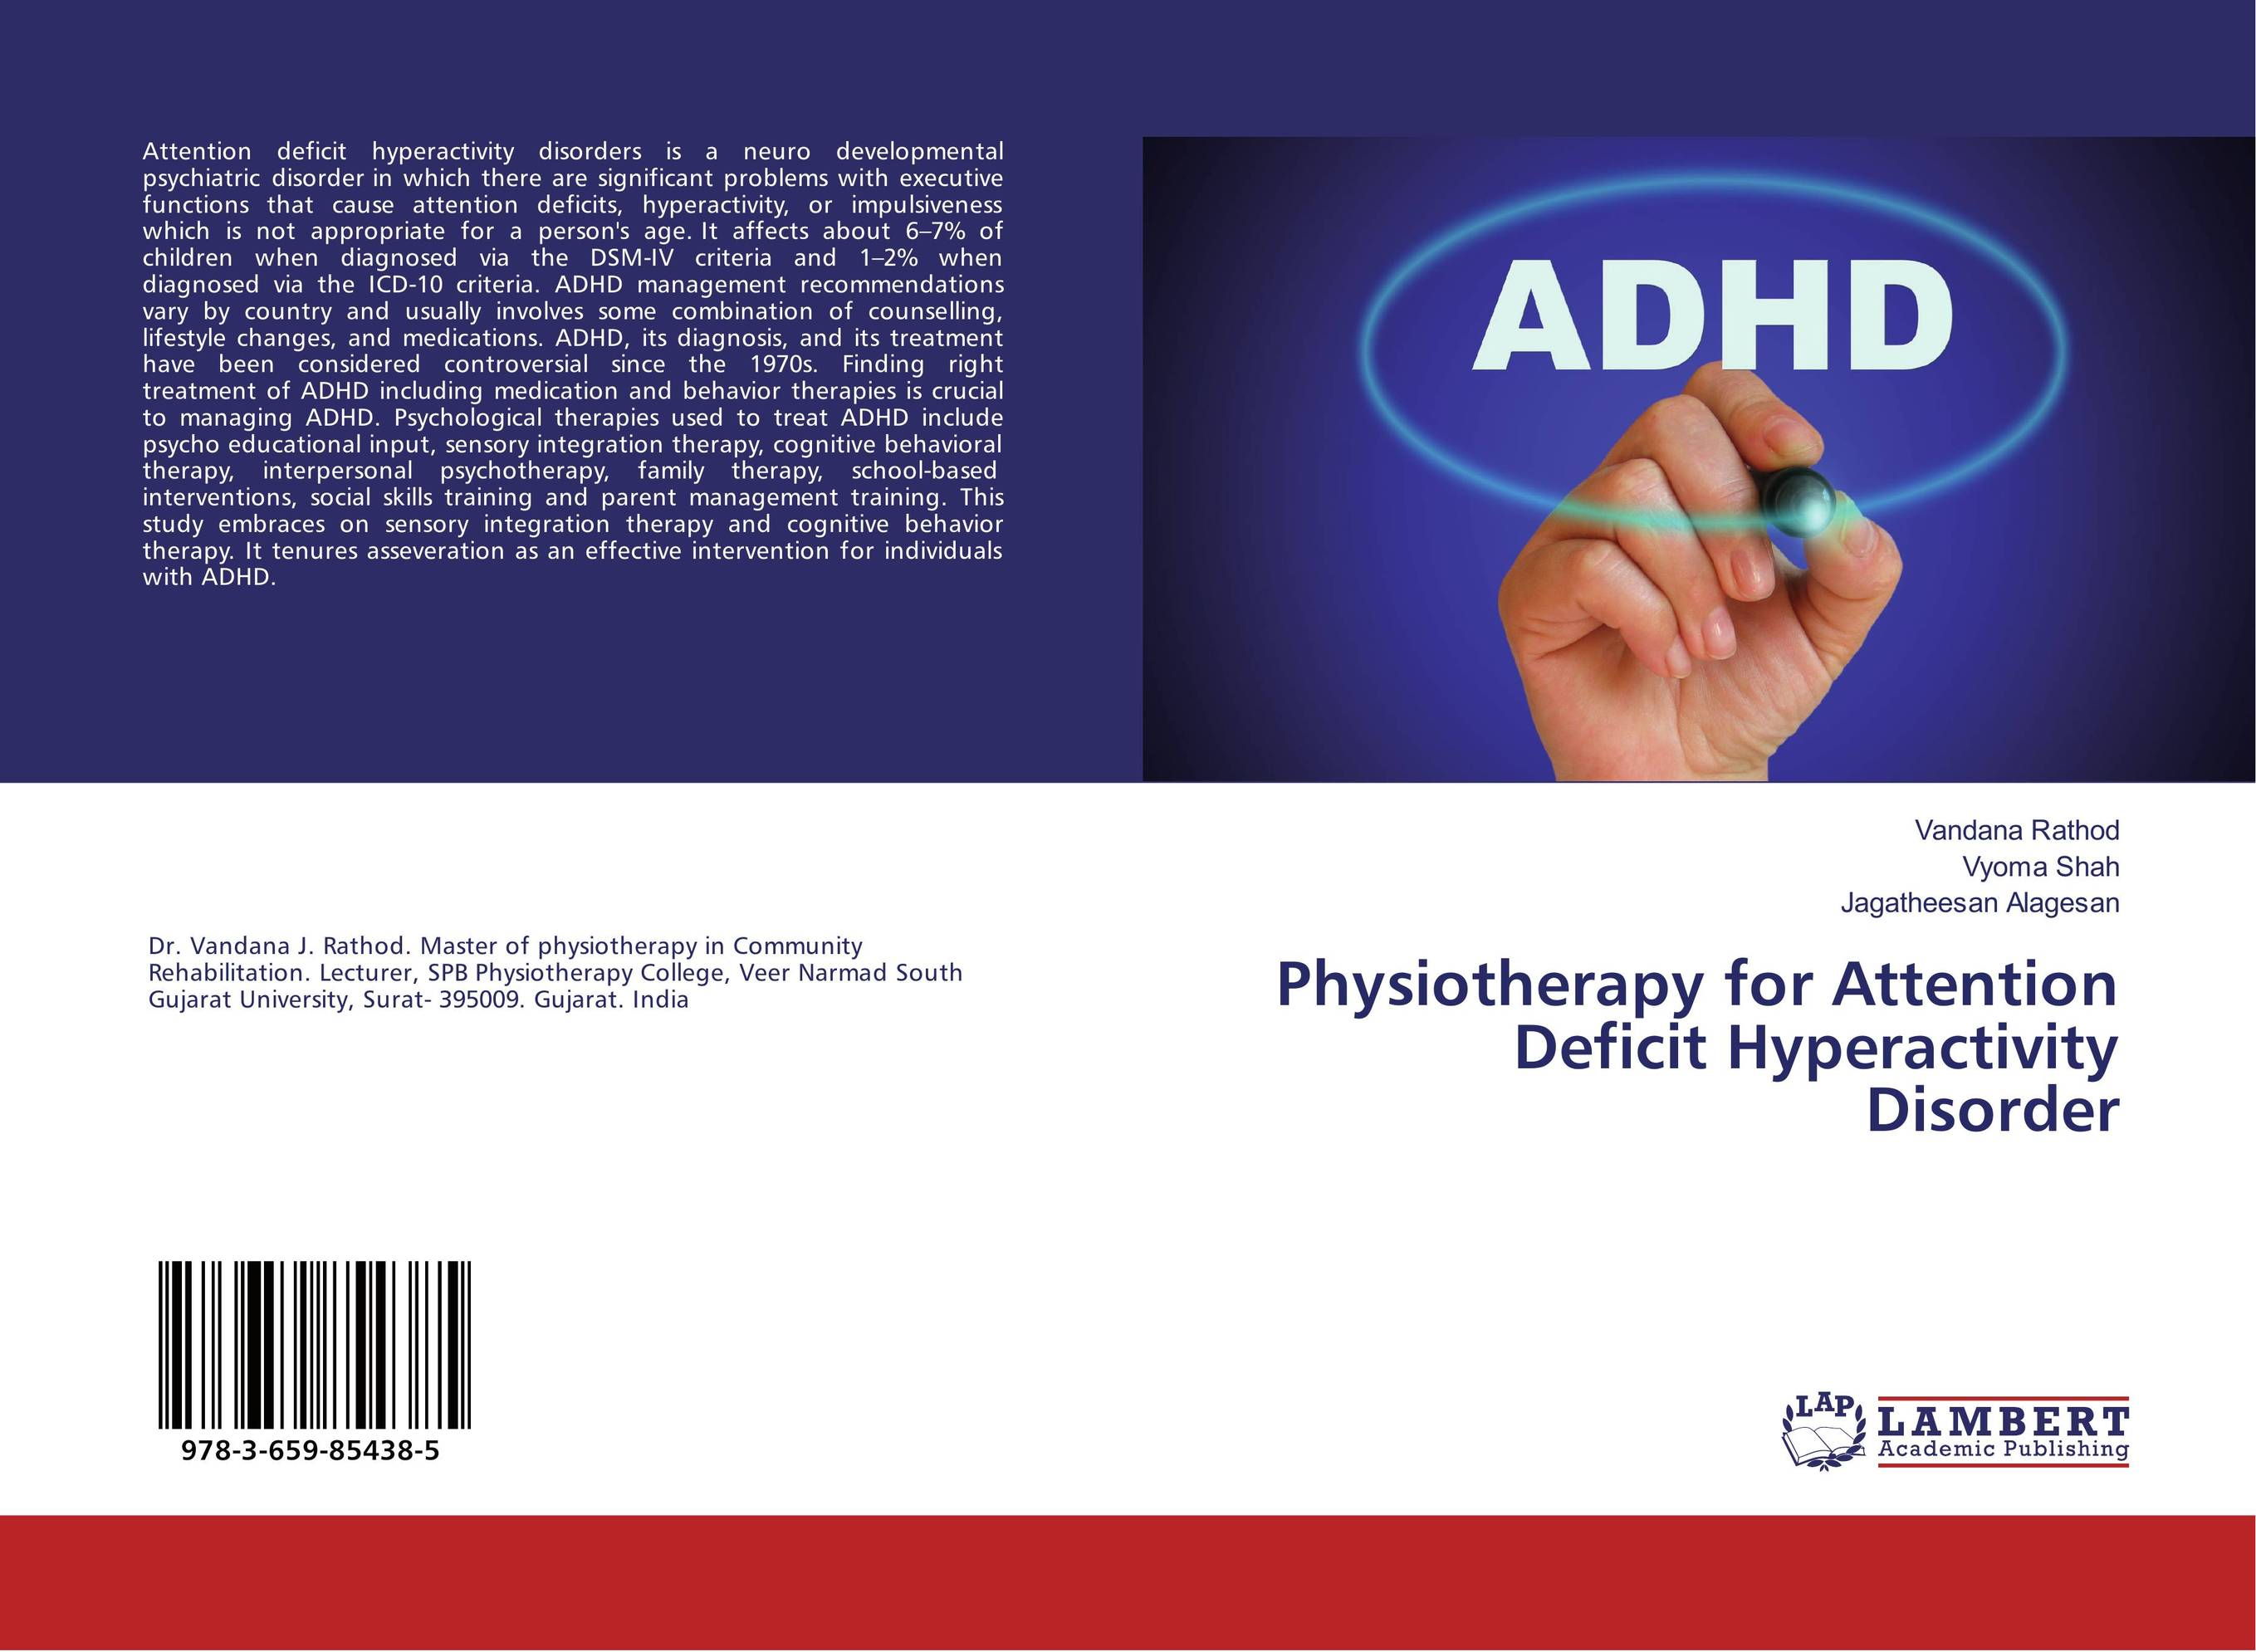 Physiotherapy for Attention Deficit Hyperactivity Disorder sandra rief f the adhd book of lists a practical guide for helping children and teens with attention deficit disorders